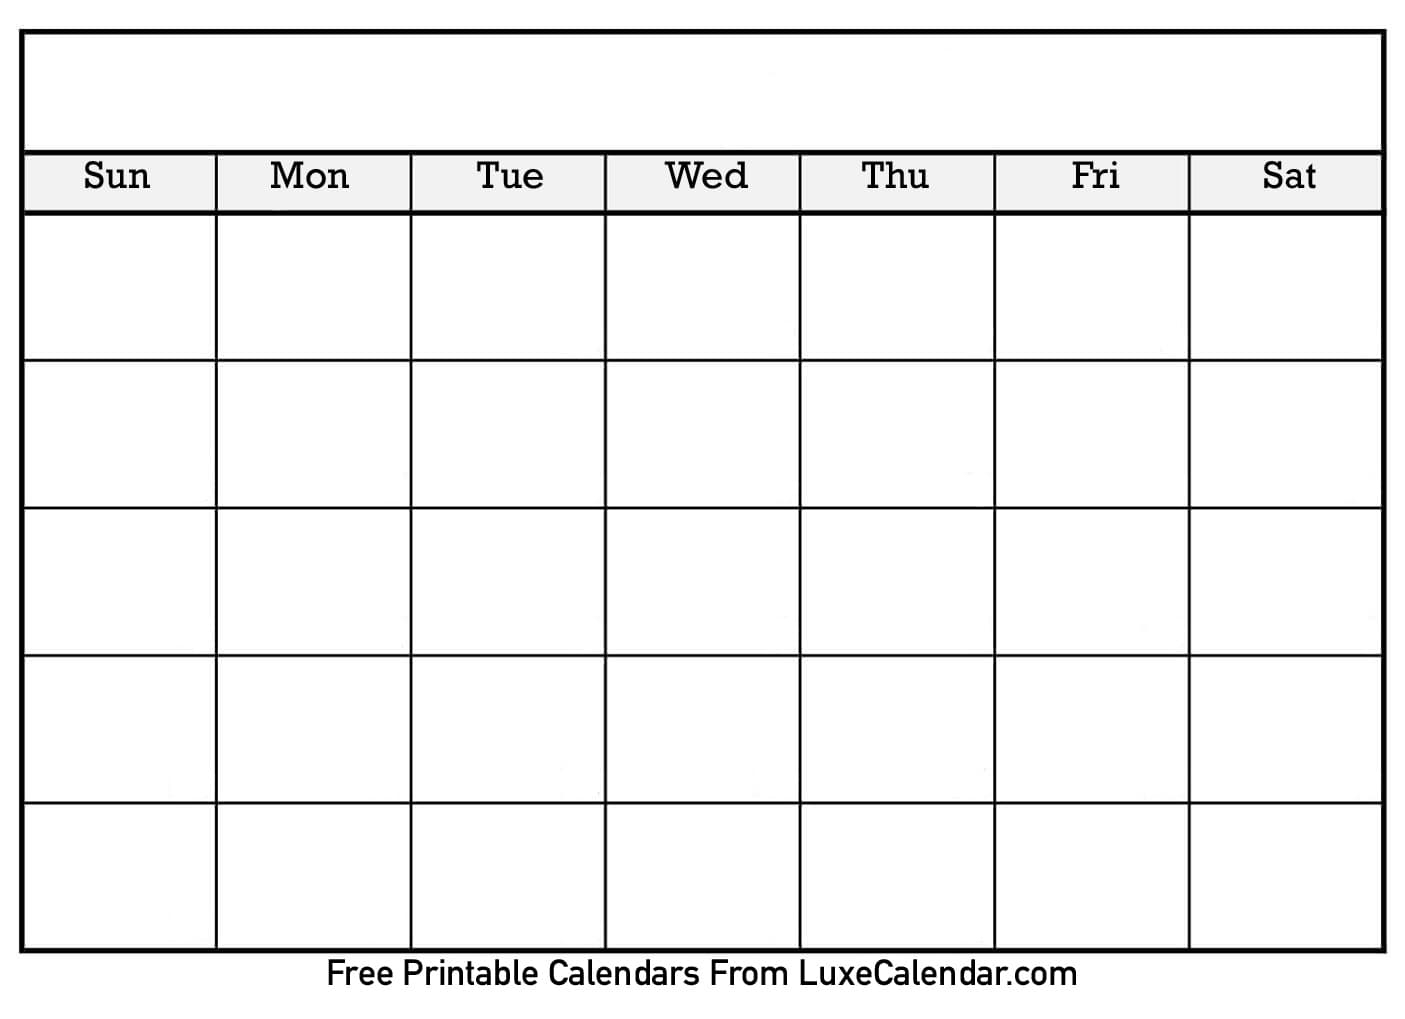 Blank Printable Calendar - Luxe Calendar pertaining to Blank Monthly Calendars To Print